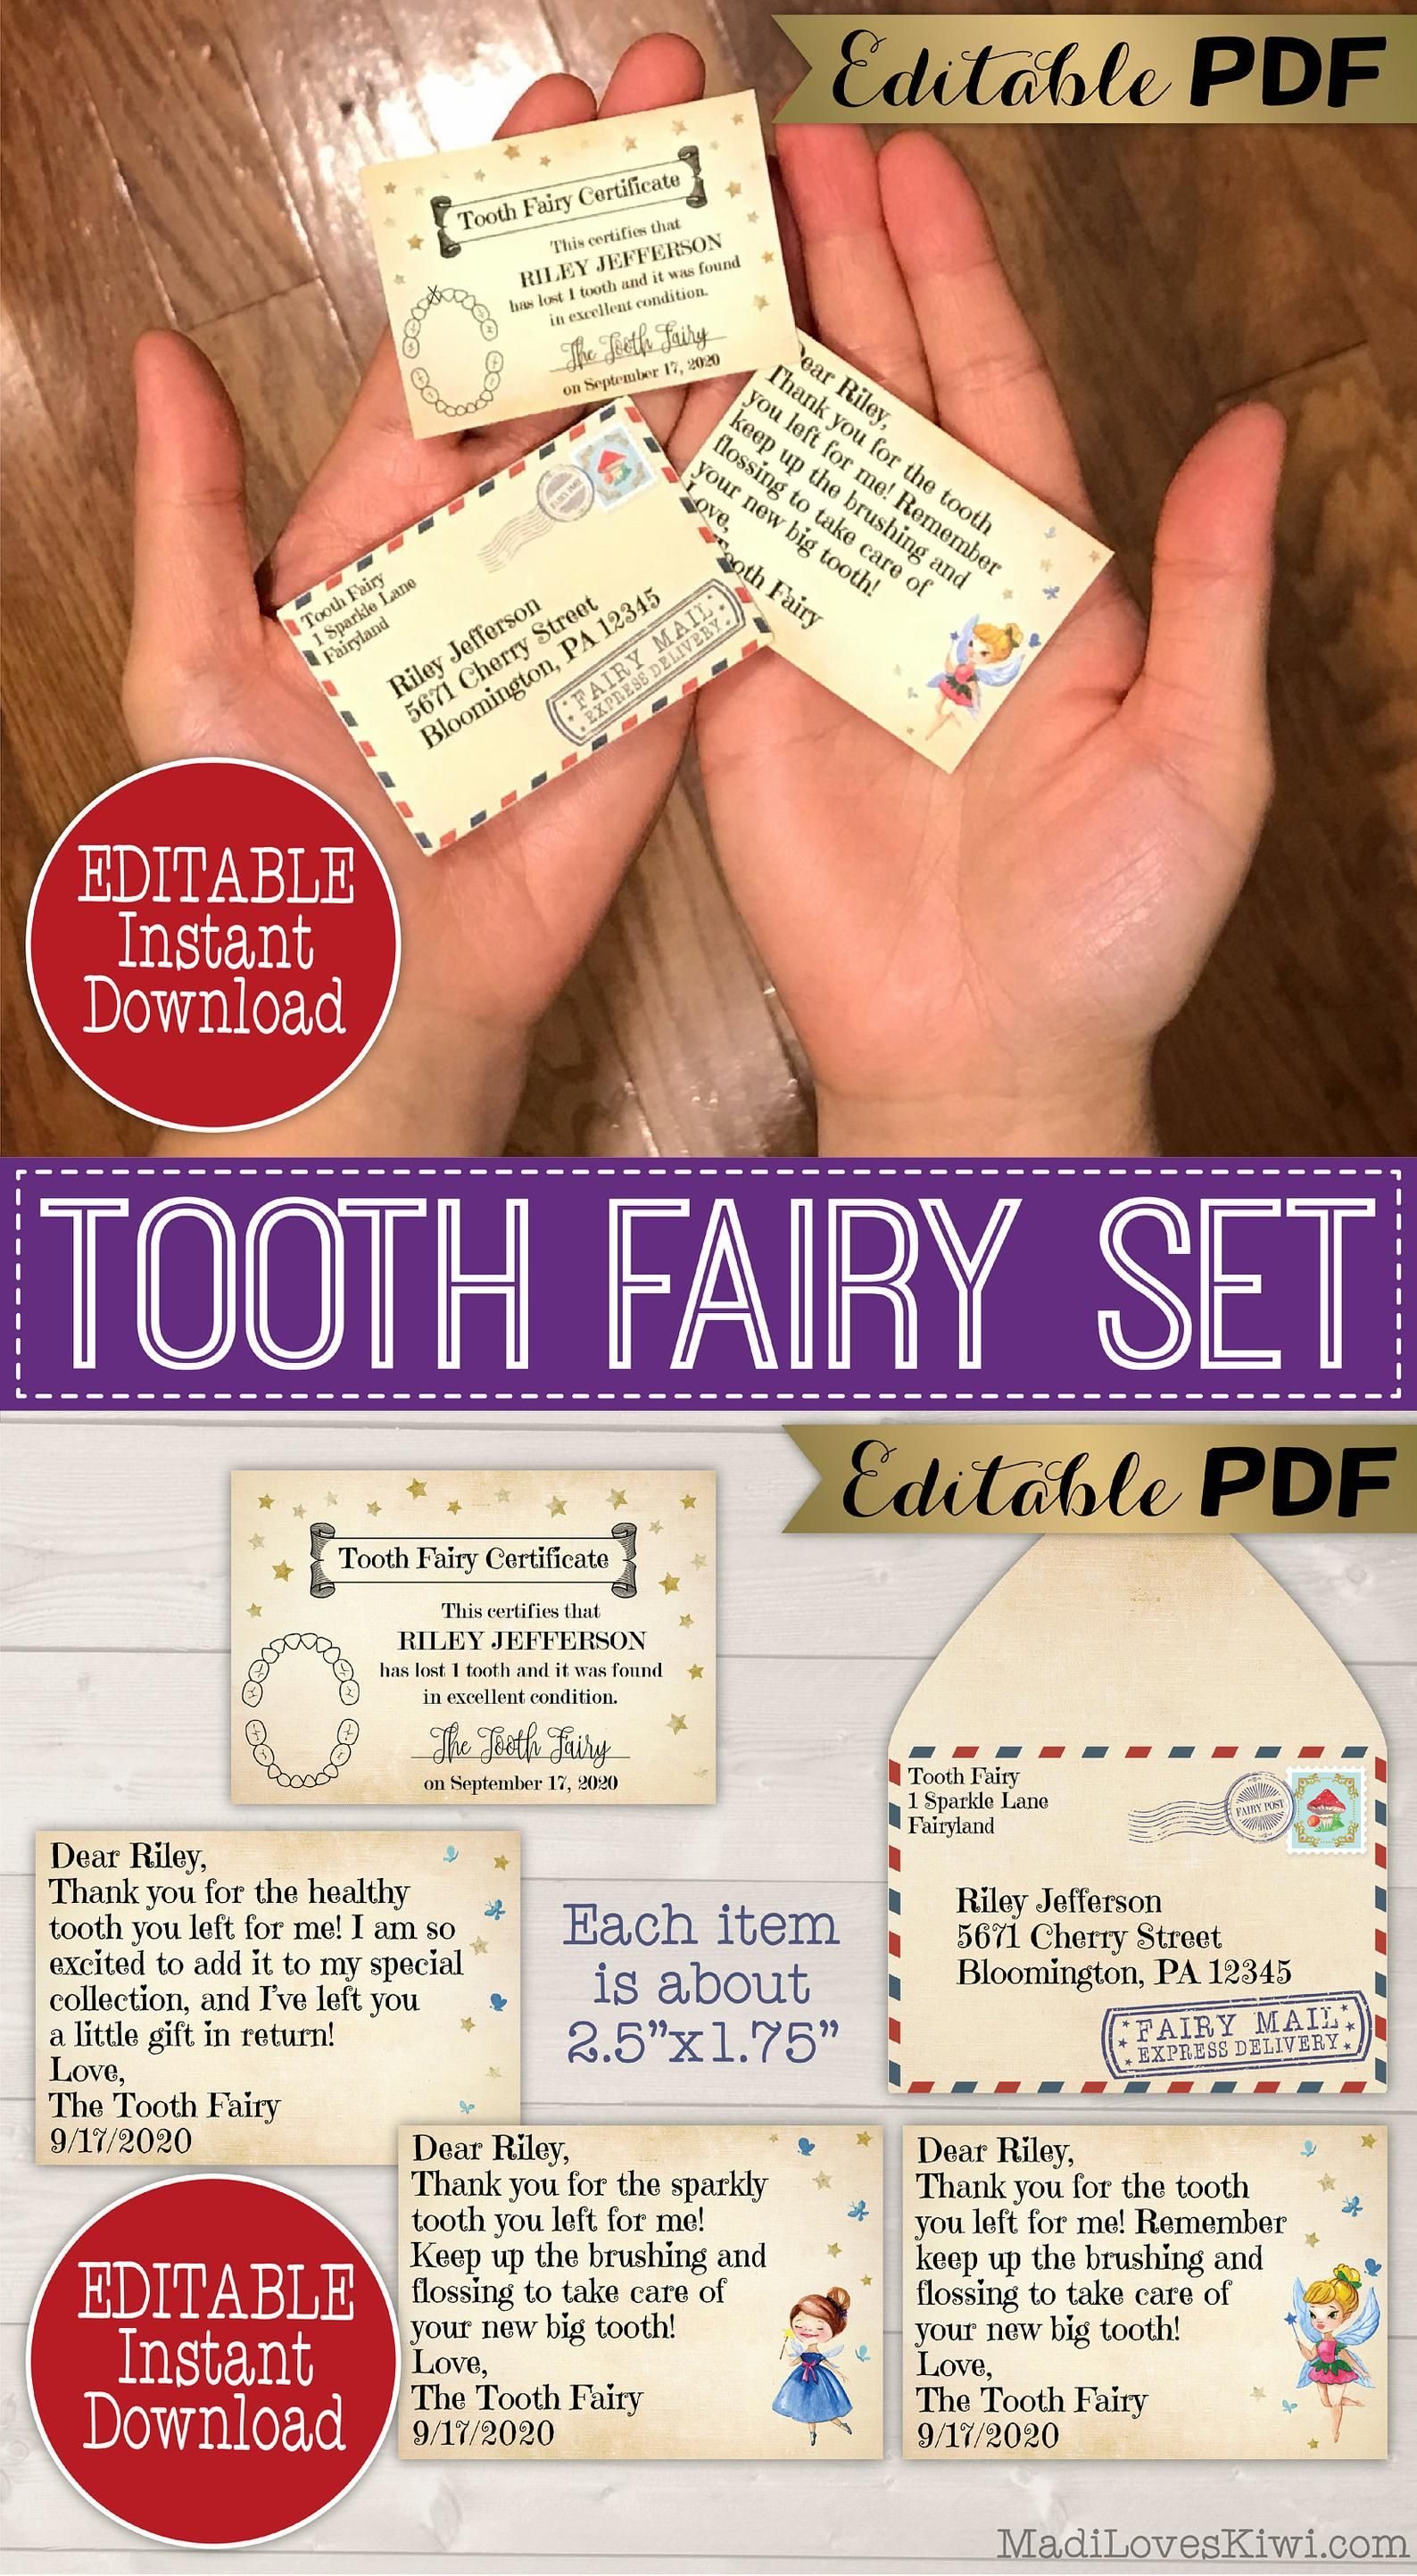 Vintage Printable Tooth Fairy Letter Envelope Mini Lost Tooth Certificate Pdf Template Editable Mail Idea Receipt Download First Report In 2021 Tooth Fairy Letter Tooth Fairy Certificate Tooth Fairy Letter Template